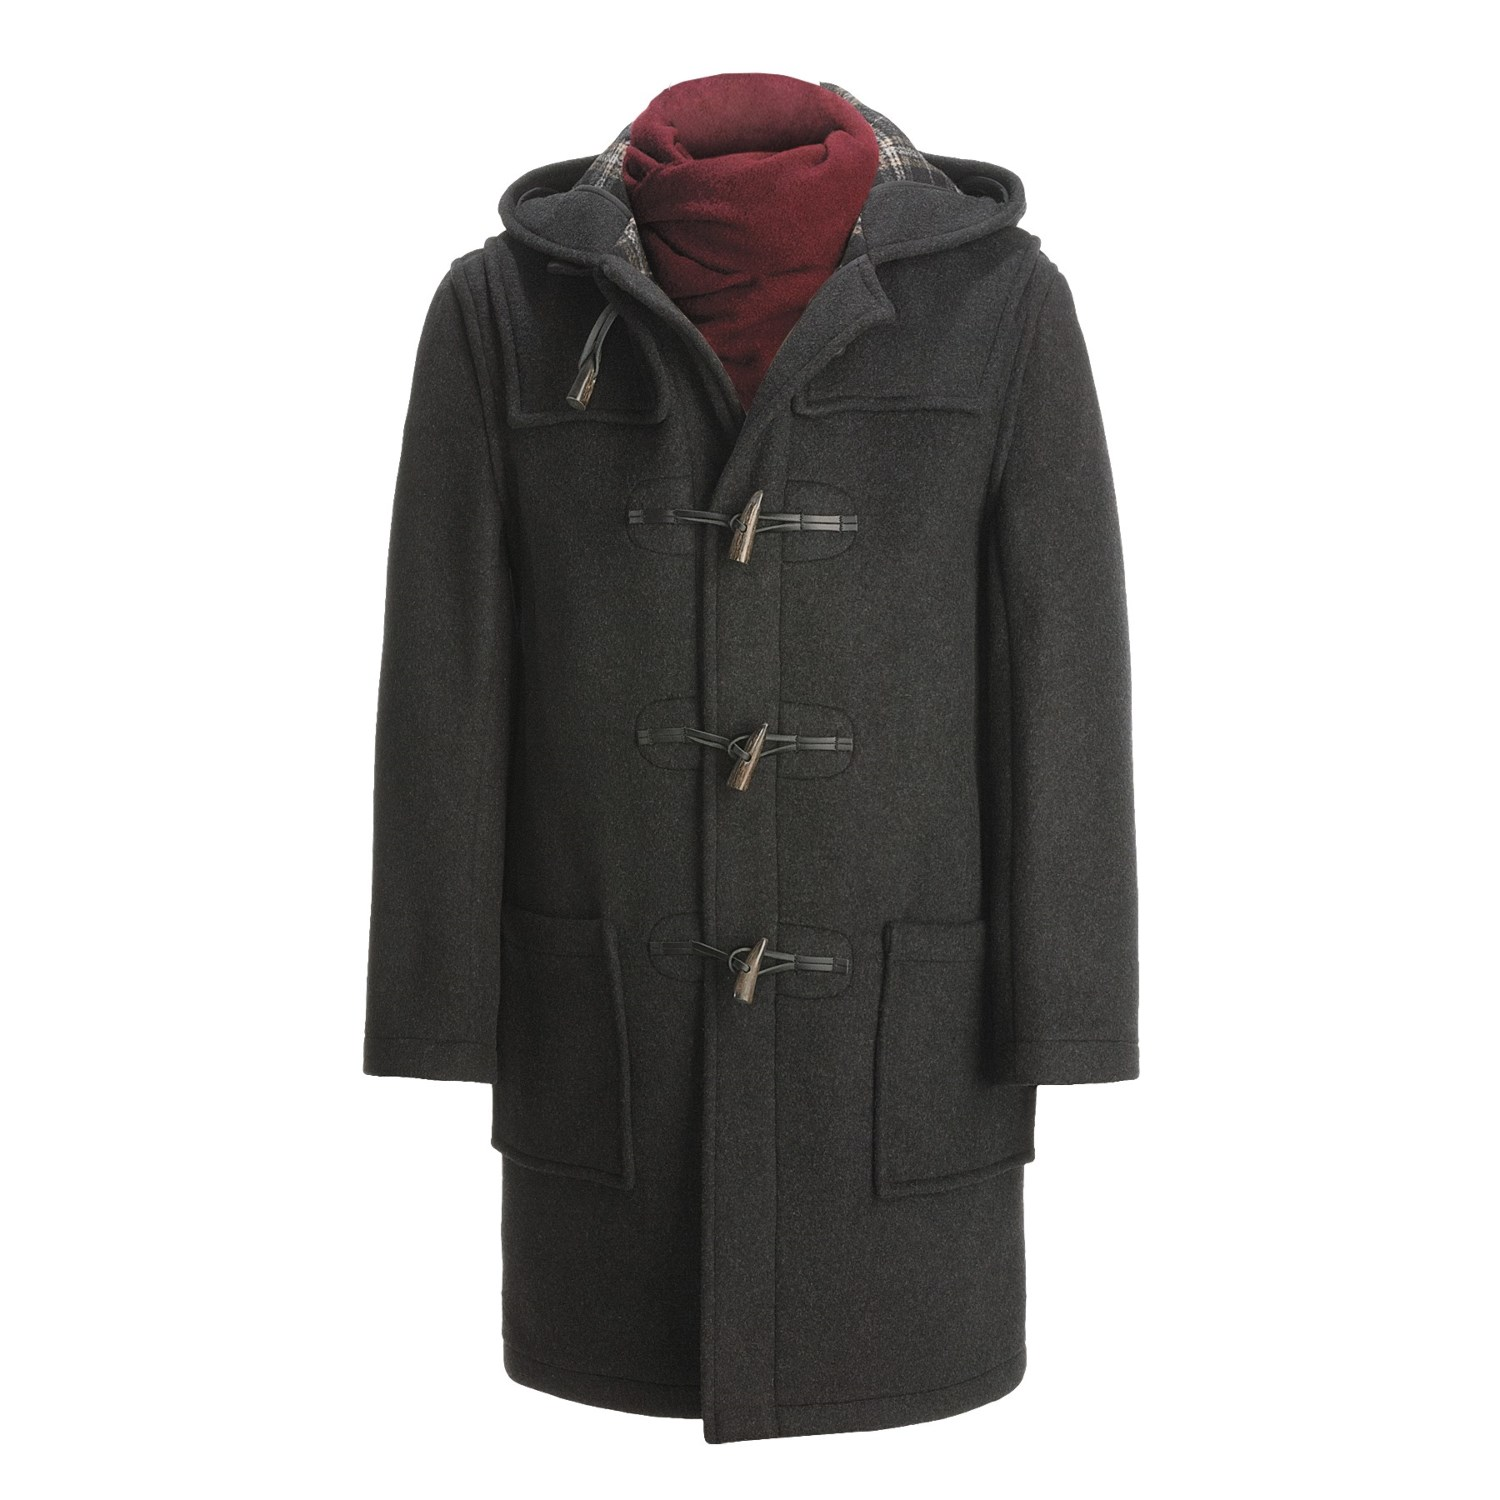 Find great deals on eBay for montgomery coat. Shop with confidence.